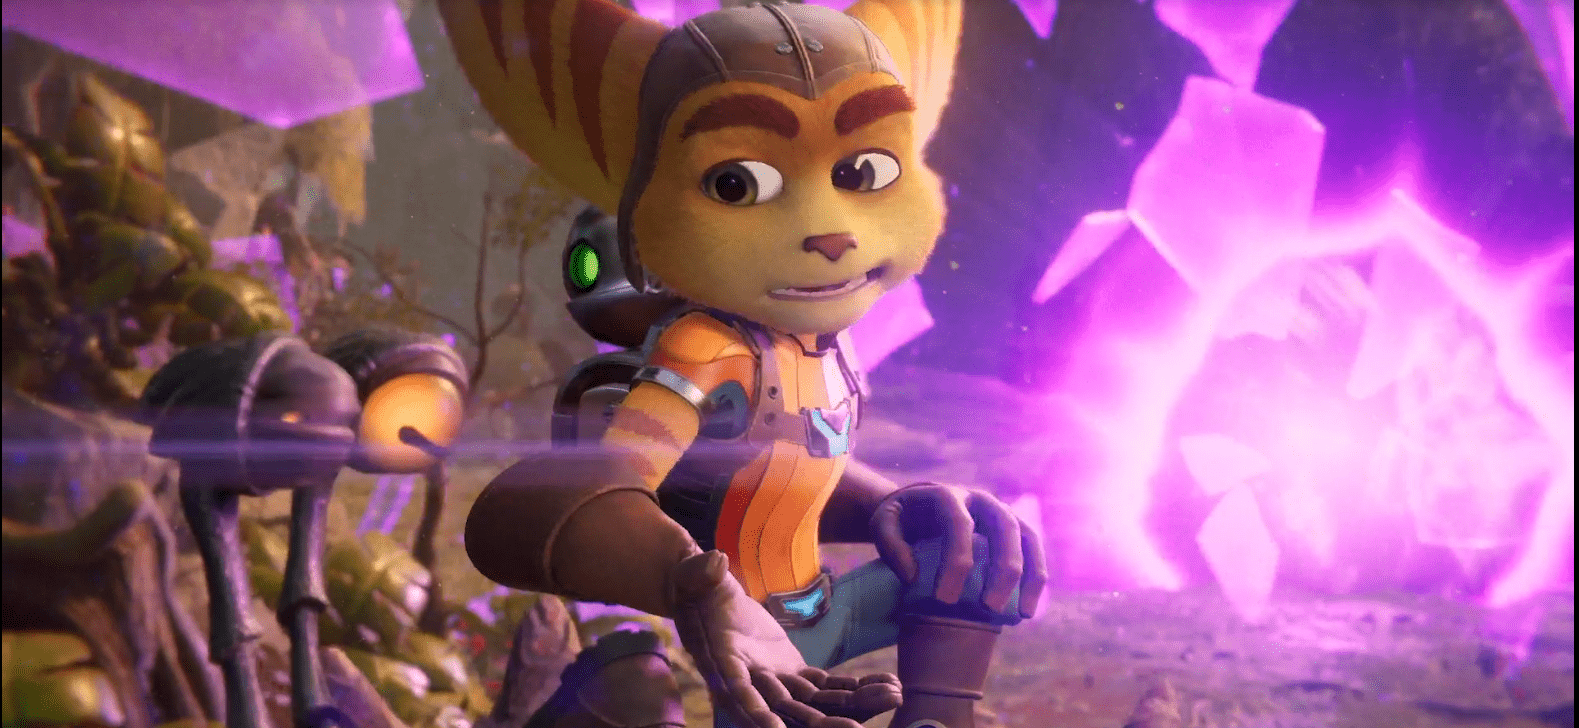 Ratchet & Clank Rift Apart announced for PS5